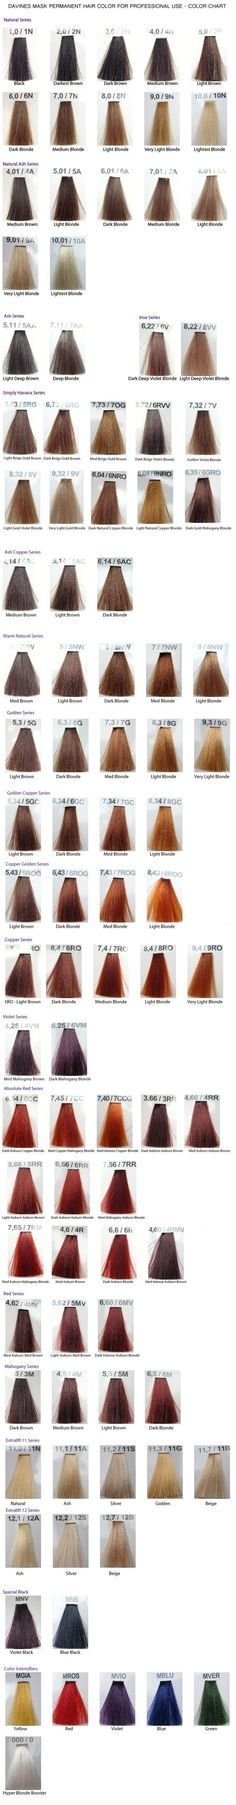 The Best Koleston Perfect Color Shades Blonde Hair Pinterest Pictures